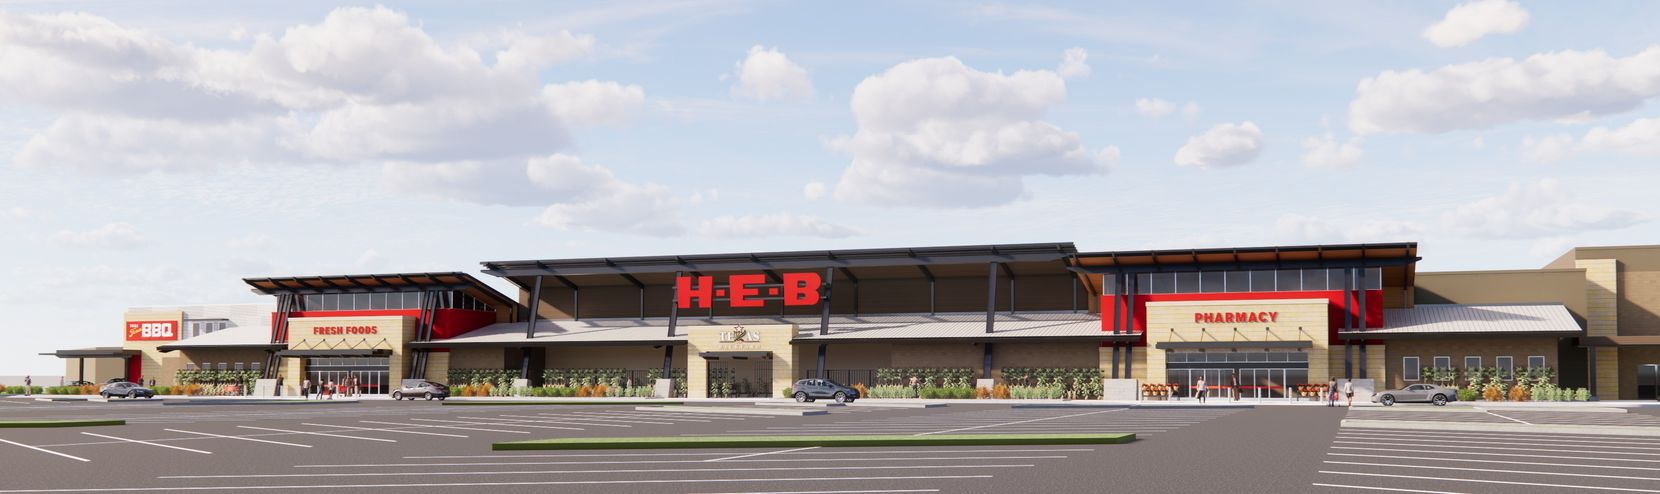 Rendering of the H-E-B store in Plano that's scheduled to open in fall 2022 on the southwest corner of Preston Road and Spring Creek Parkway. The Lakeside Market shopping center is just to the south.